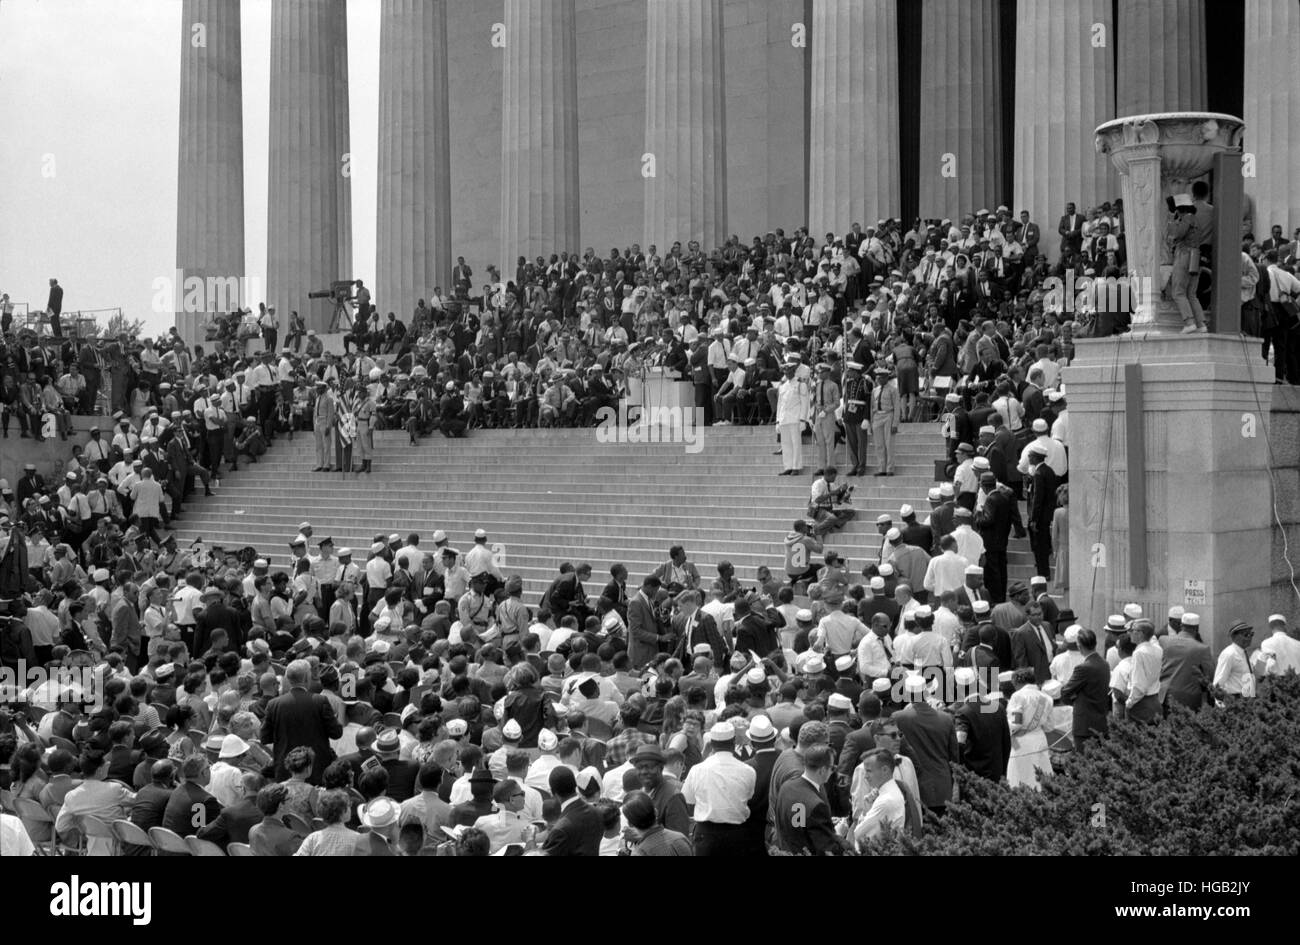 August 28, 1963 - Civil rights march on Washington D.C. - Stock Image